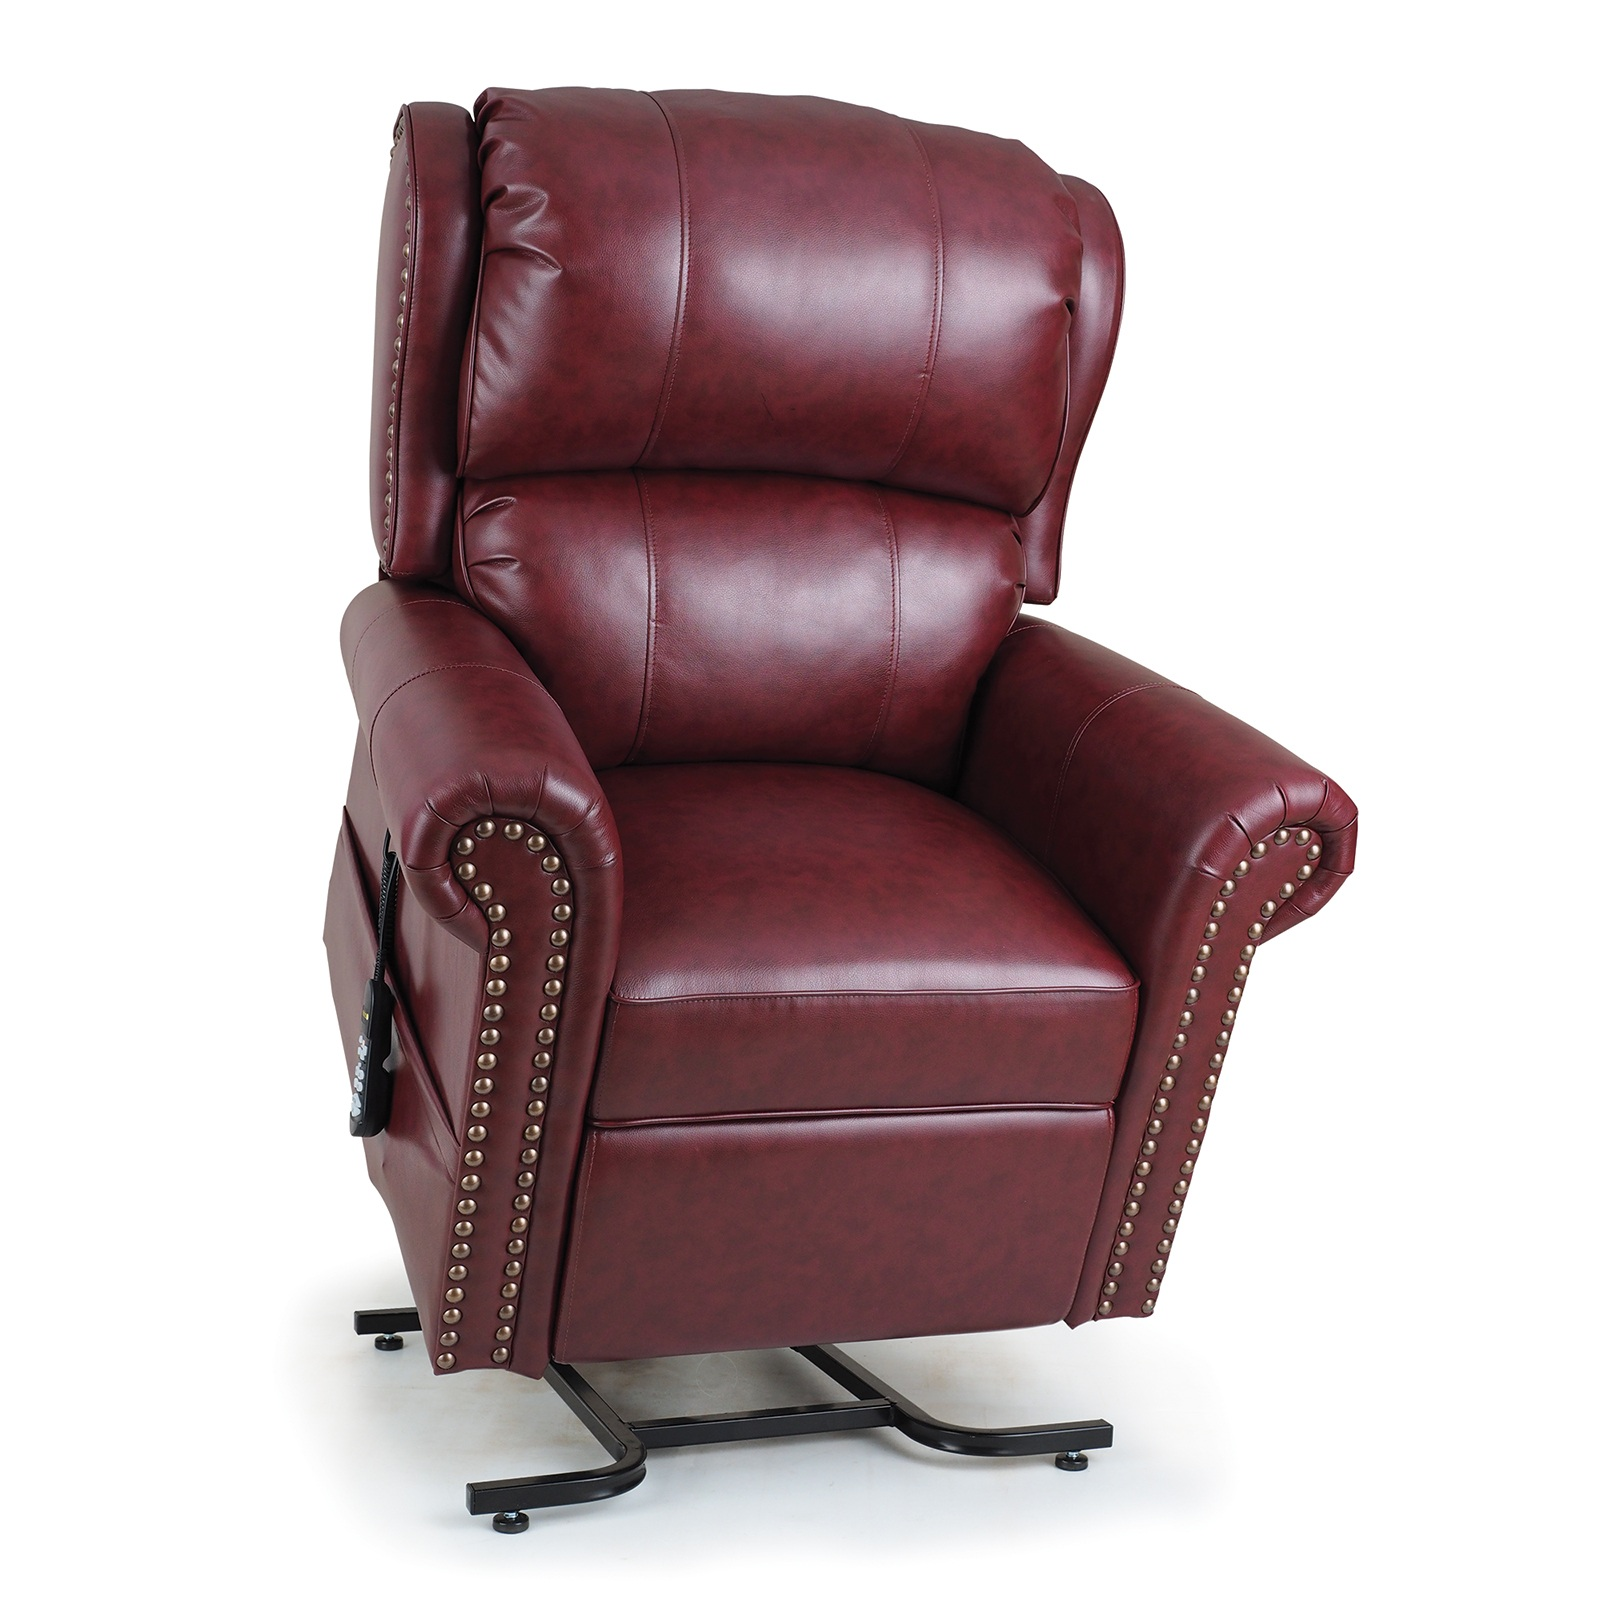 Image Result For Golden Technologies Lift Chair